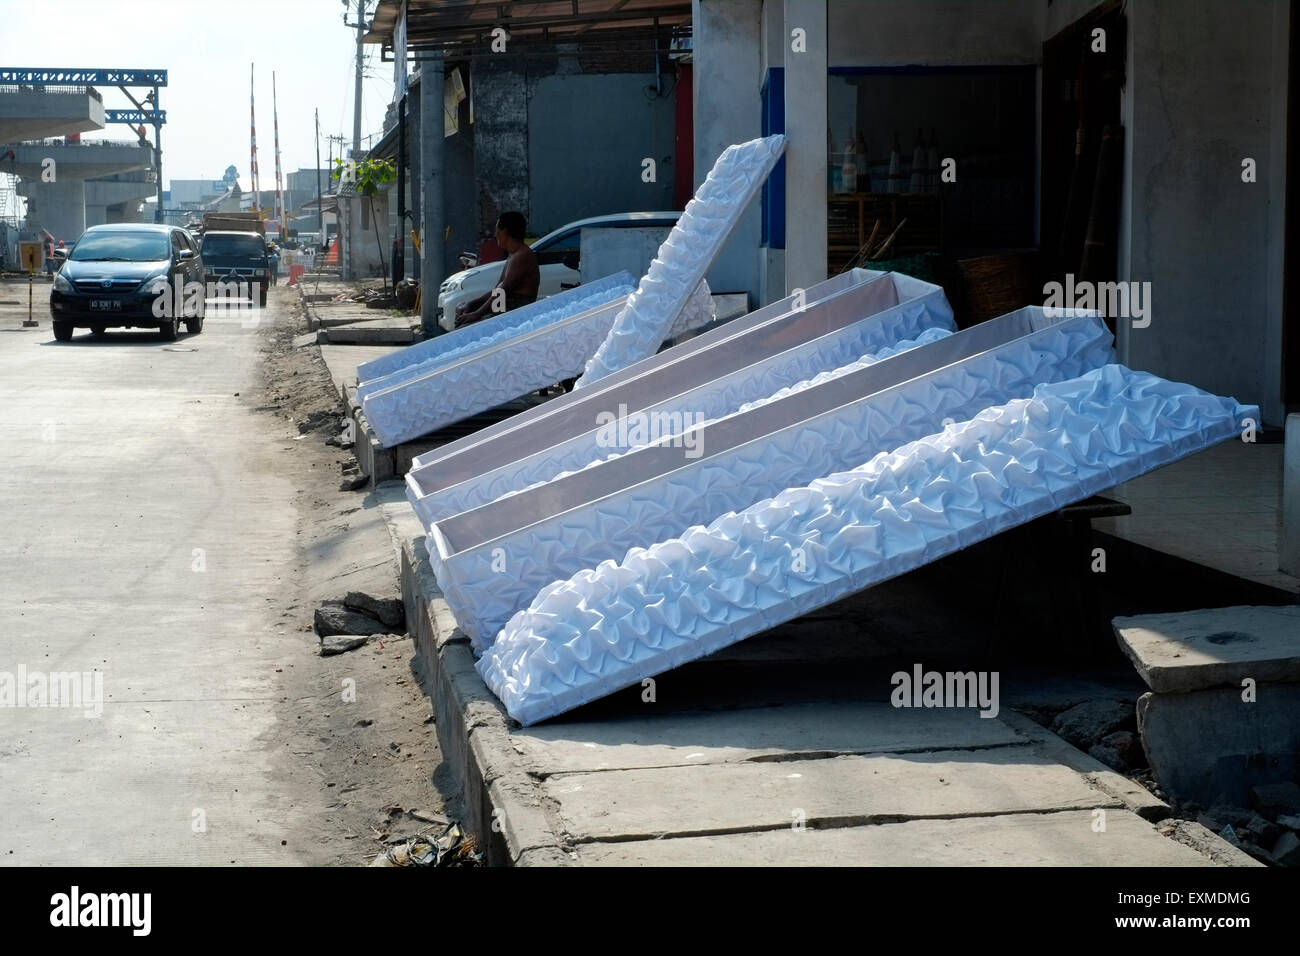 Unusual Coffin Stock Photos & Unusual Coffin Stock Images - Alamy